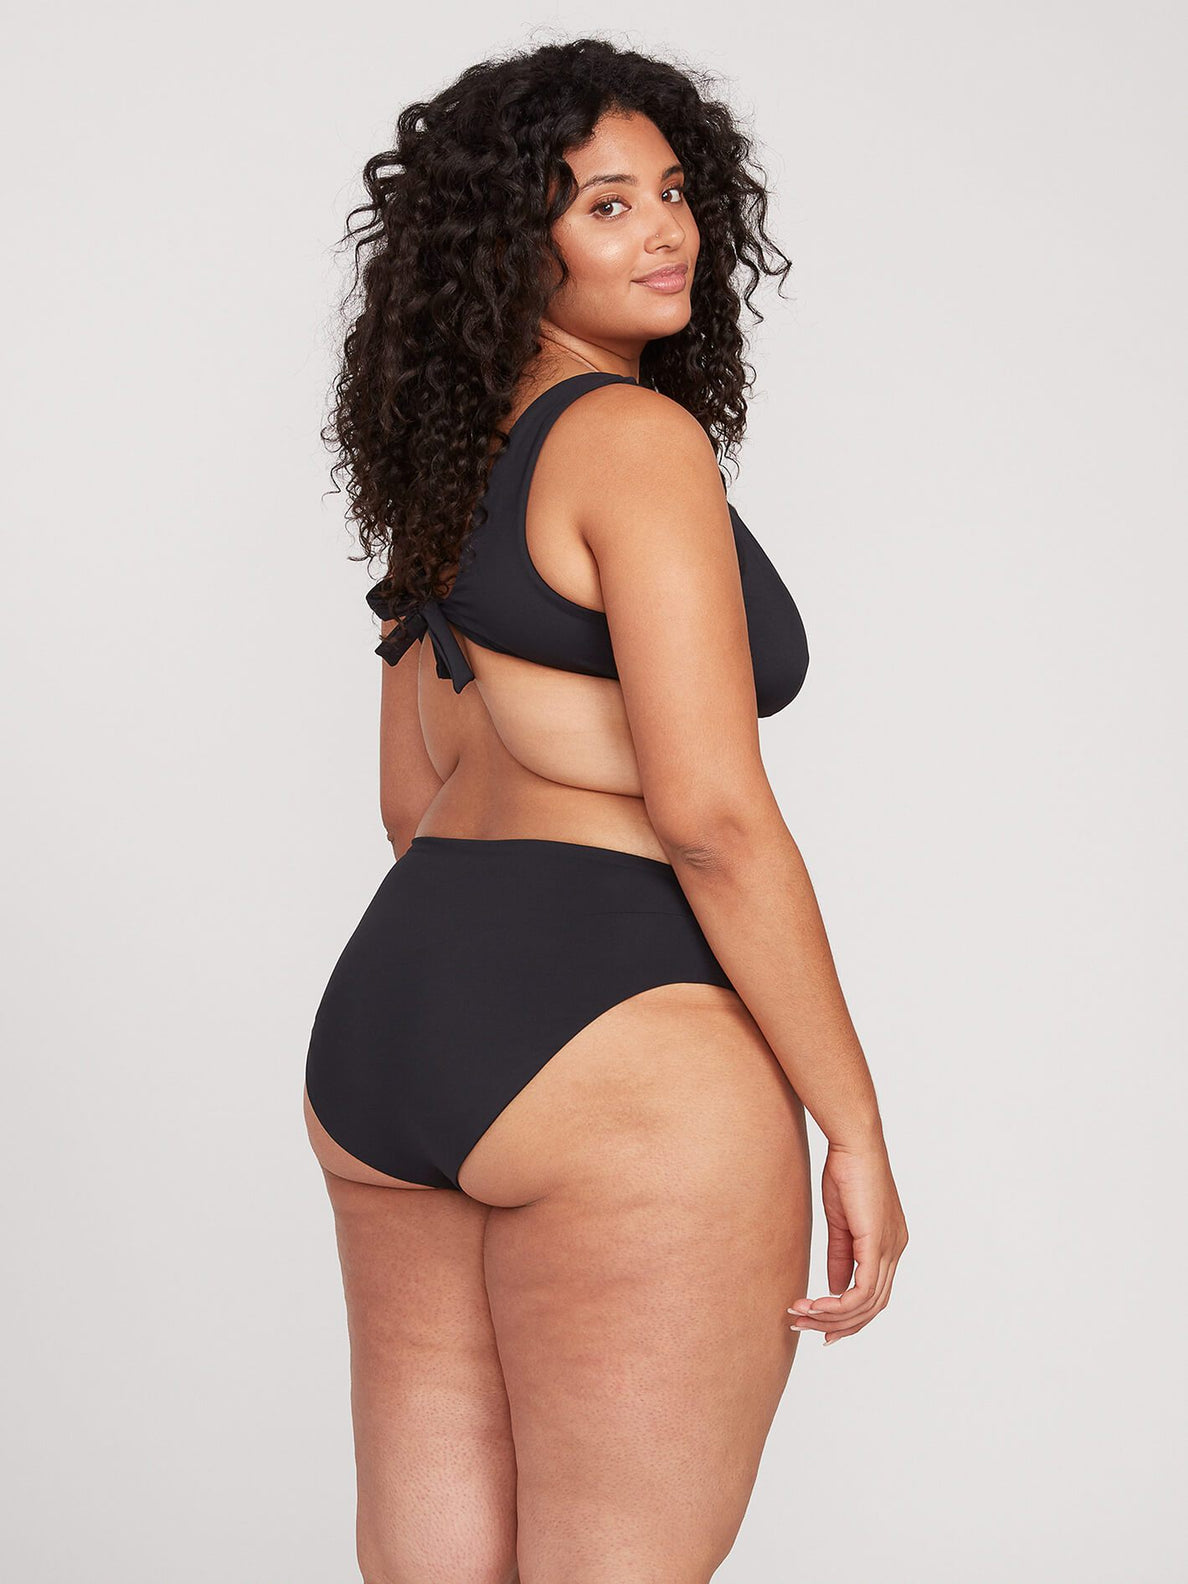 Simply Seamless Modest Plus Size - Black